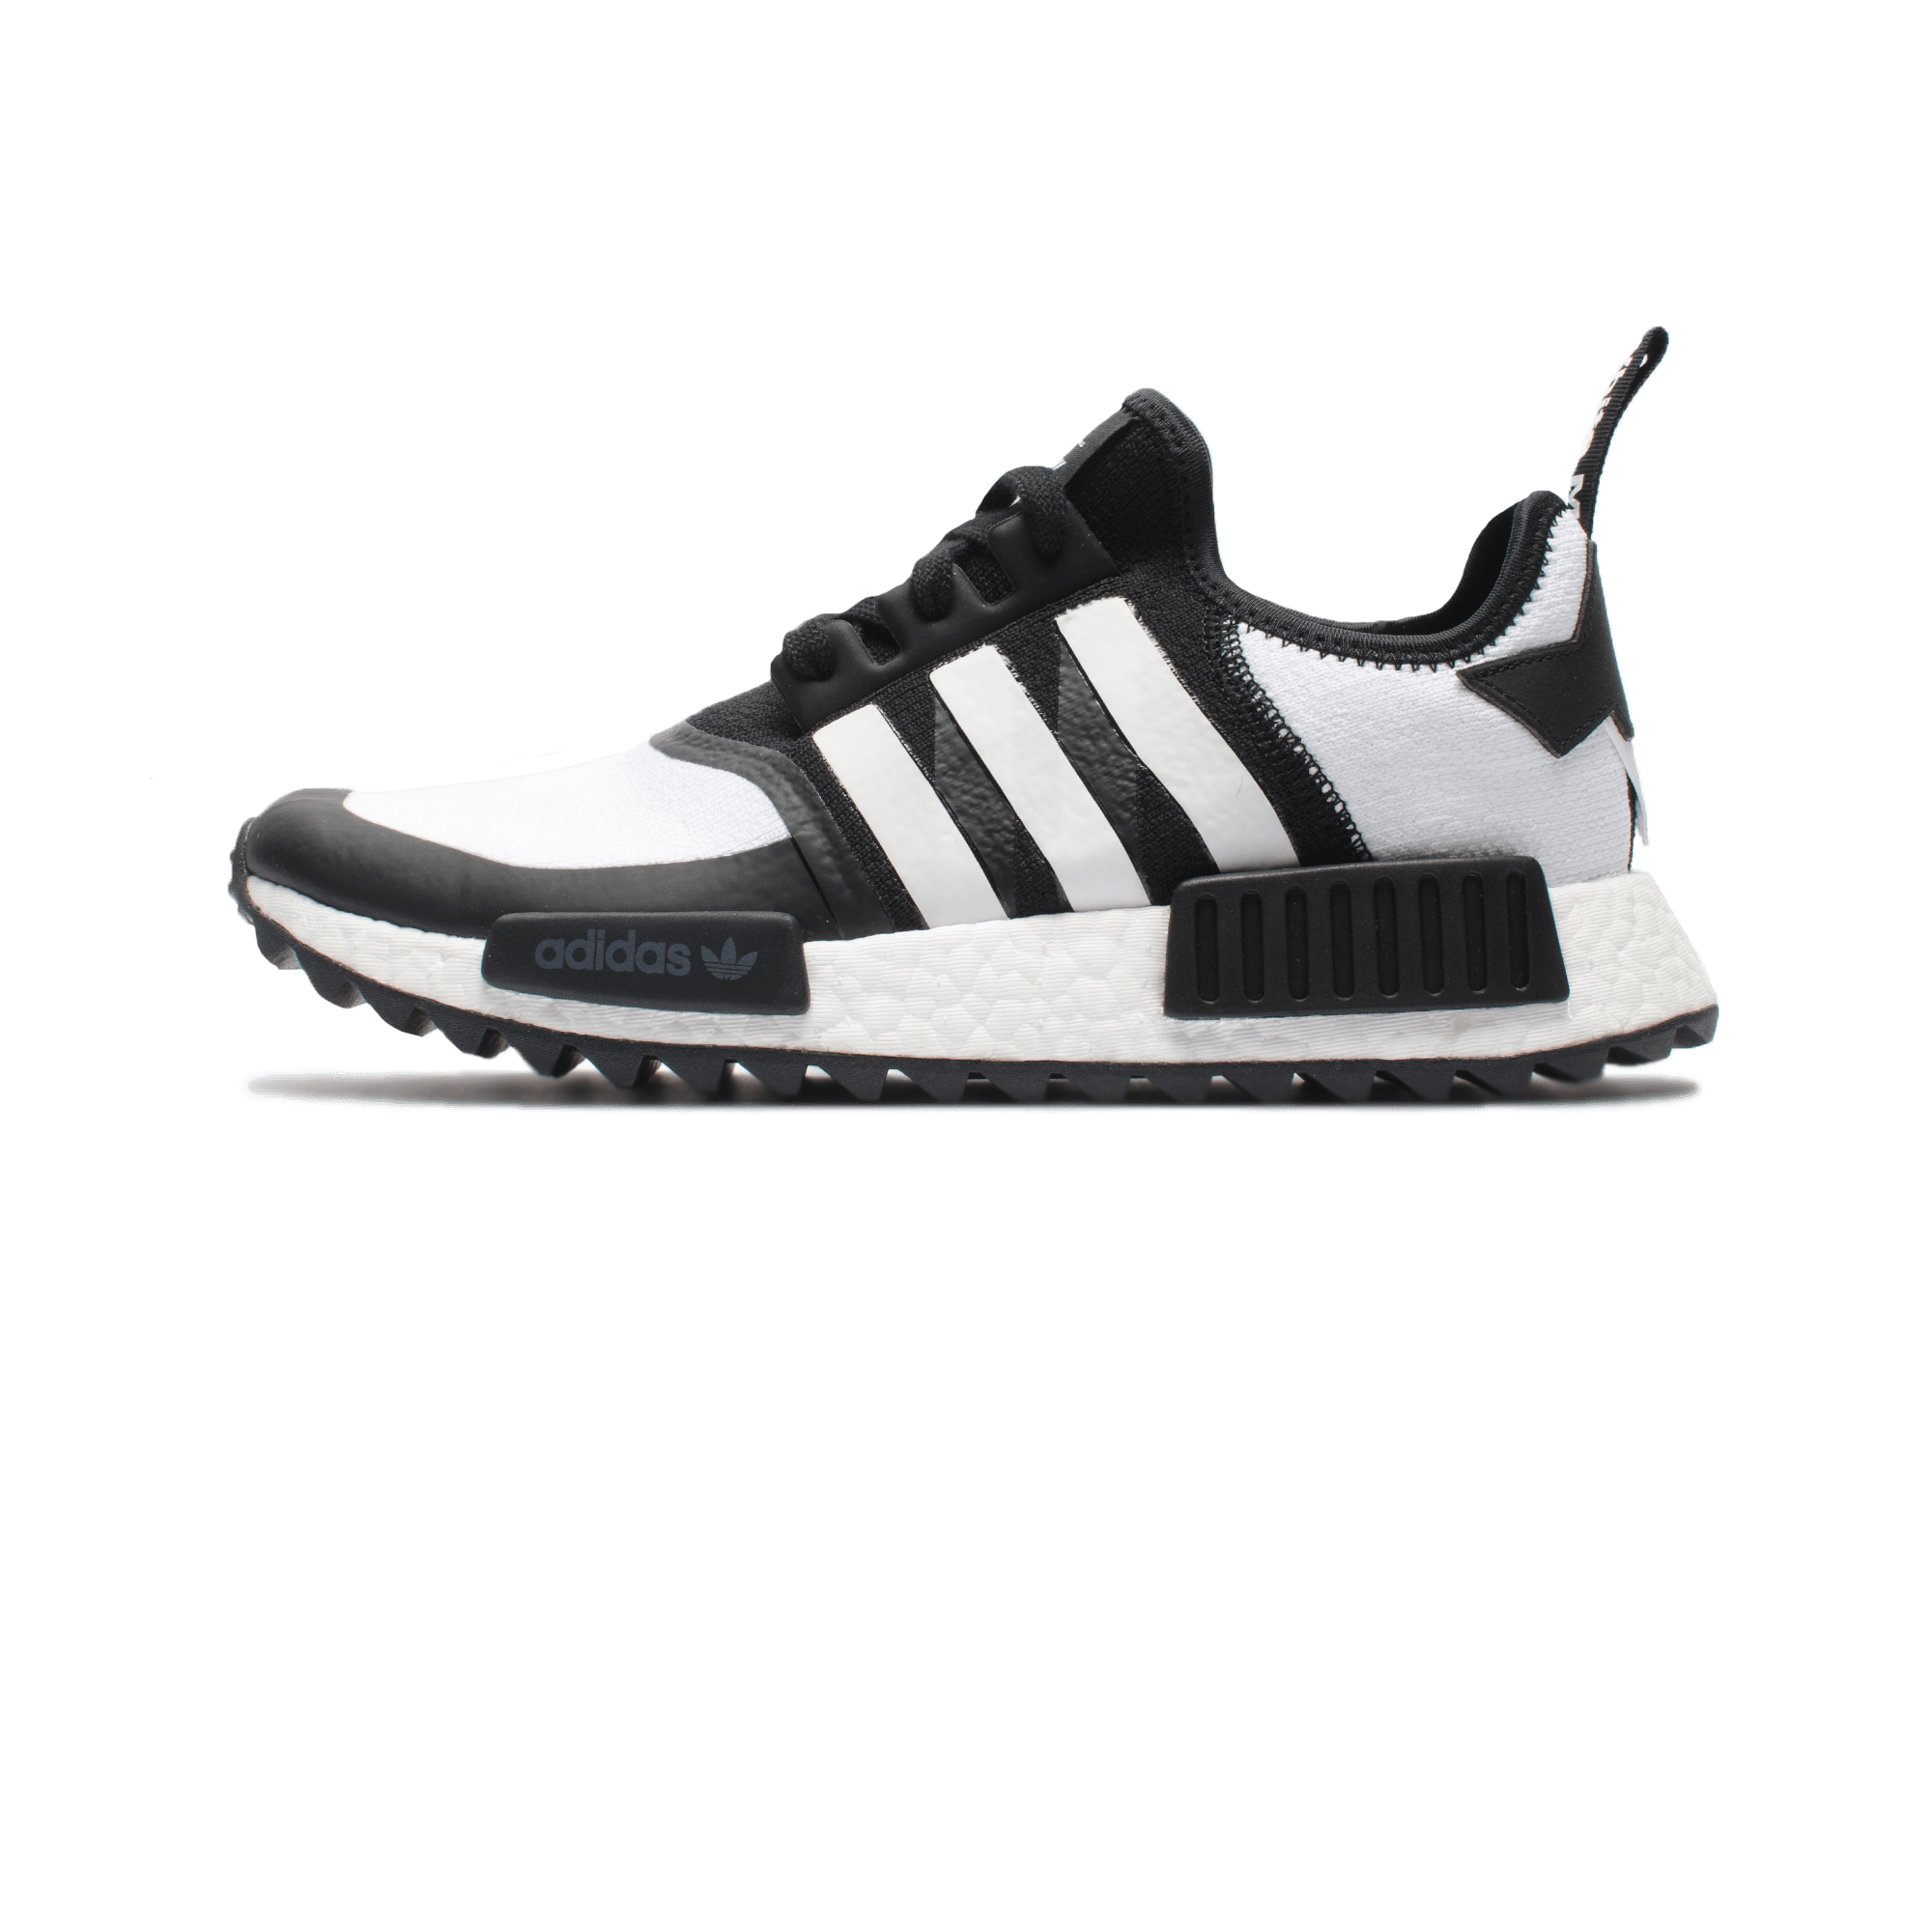 White Mountaineering NMD Trail Pk white/core black